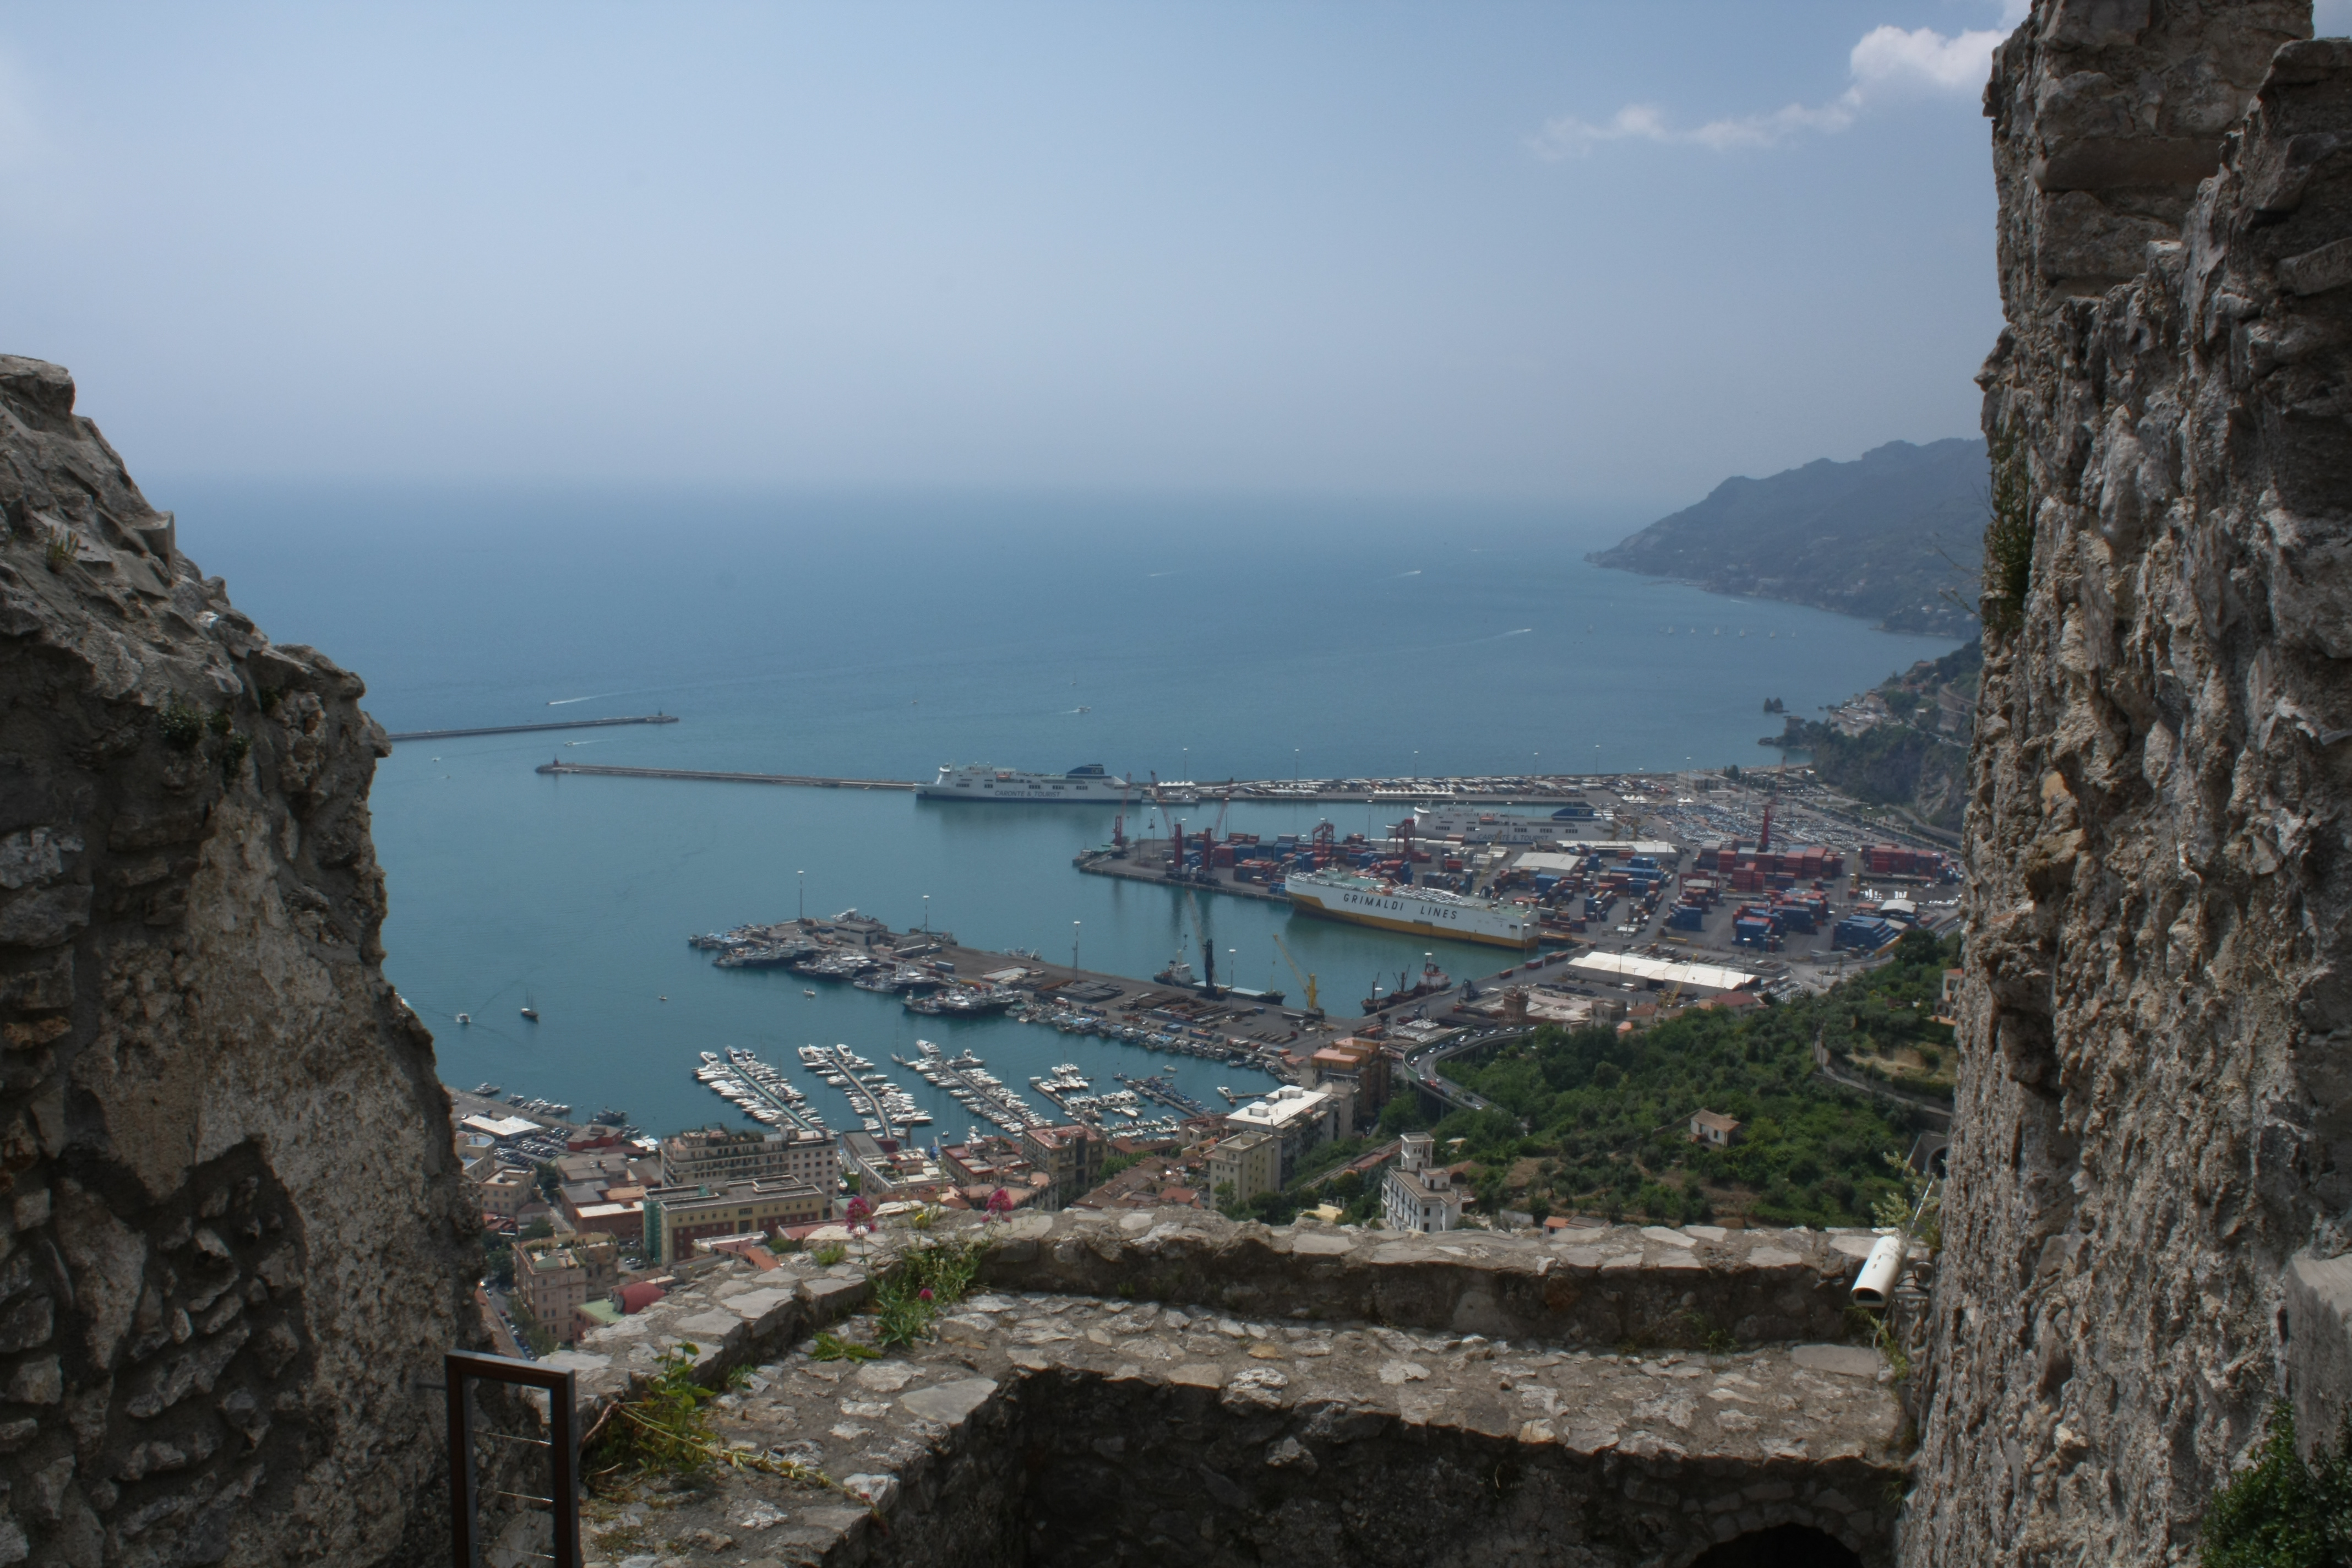 Salerno Italy  City new picture : Description Salerno, Italy May 2010 17